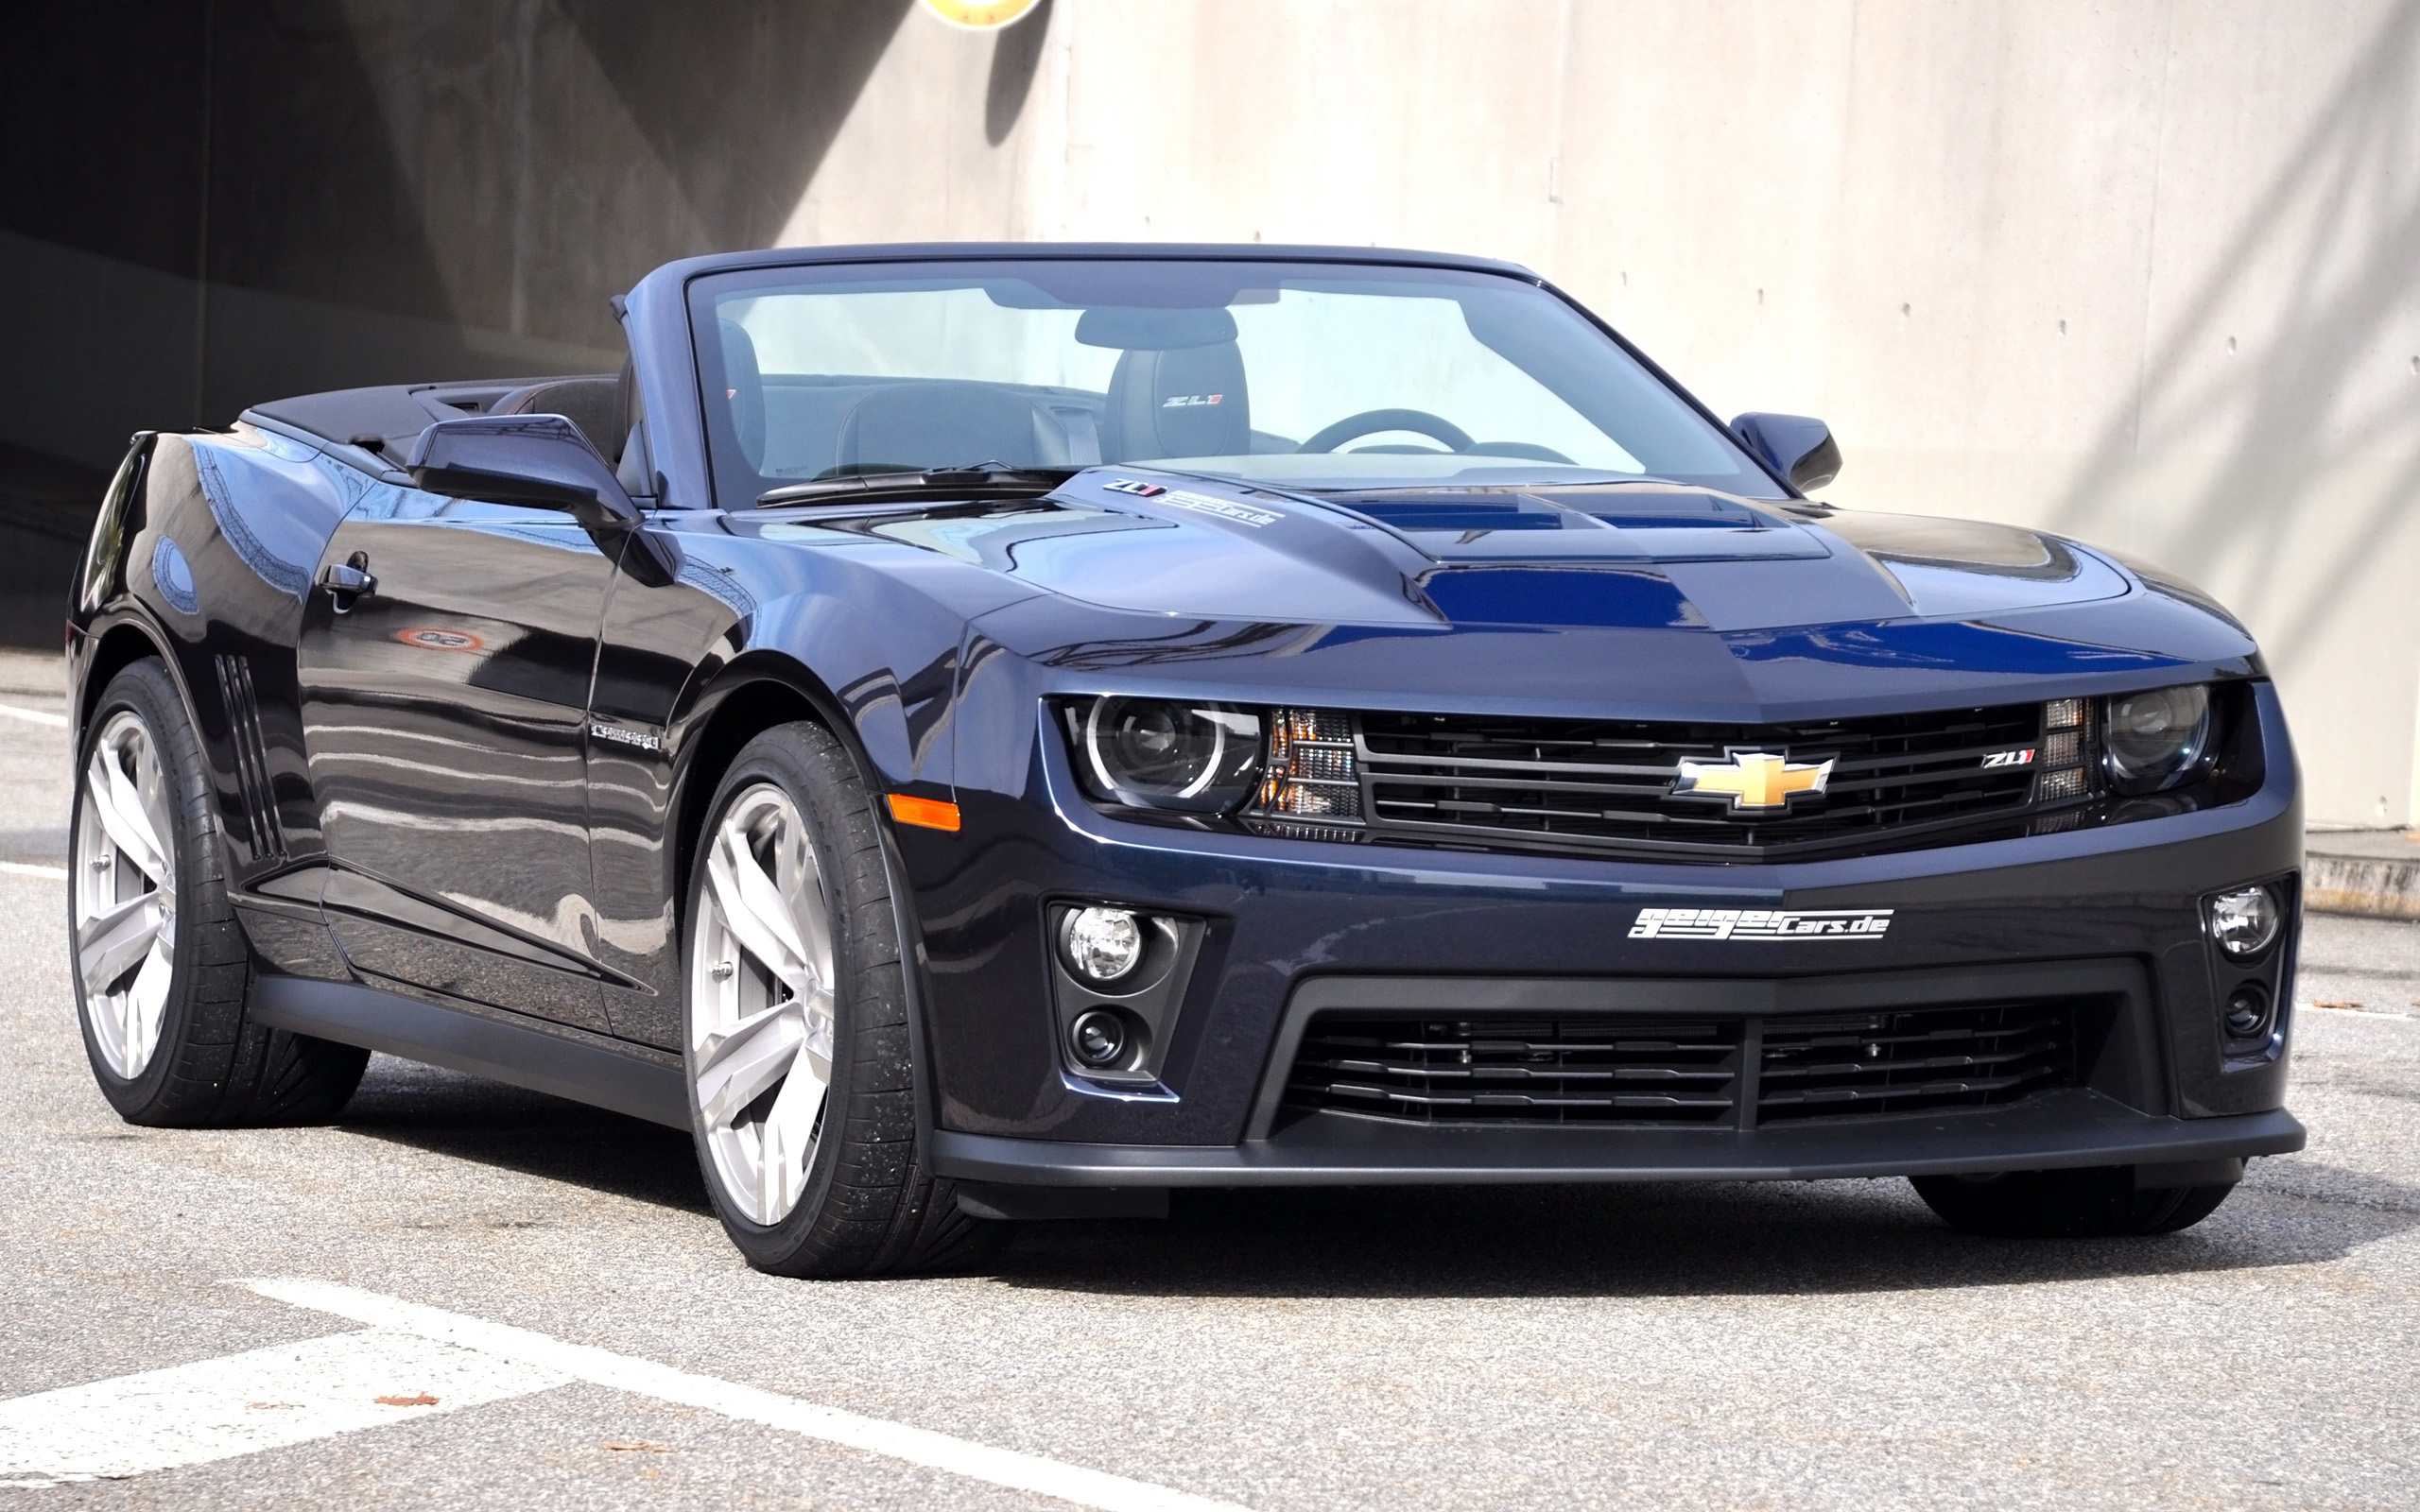 2013 chevrolet camaro zl1 cabrio by geigercars wallpaper. Black Bedroom Furniture Sets. Home Design Ideas